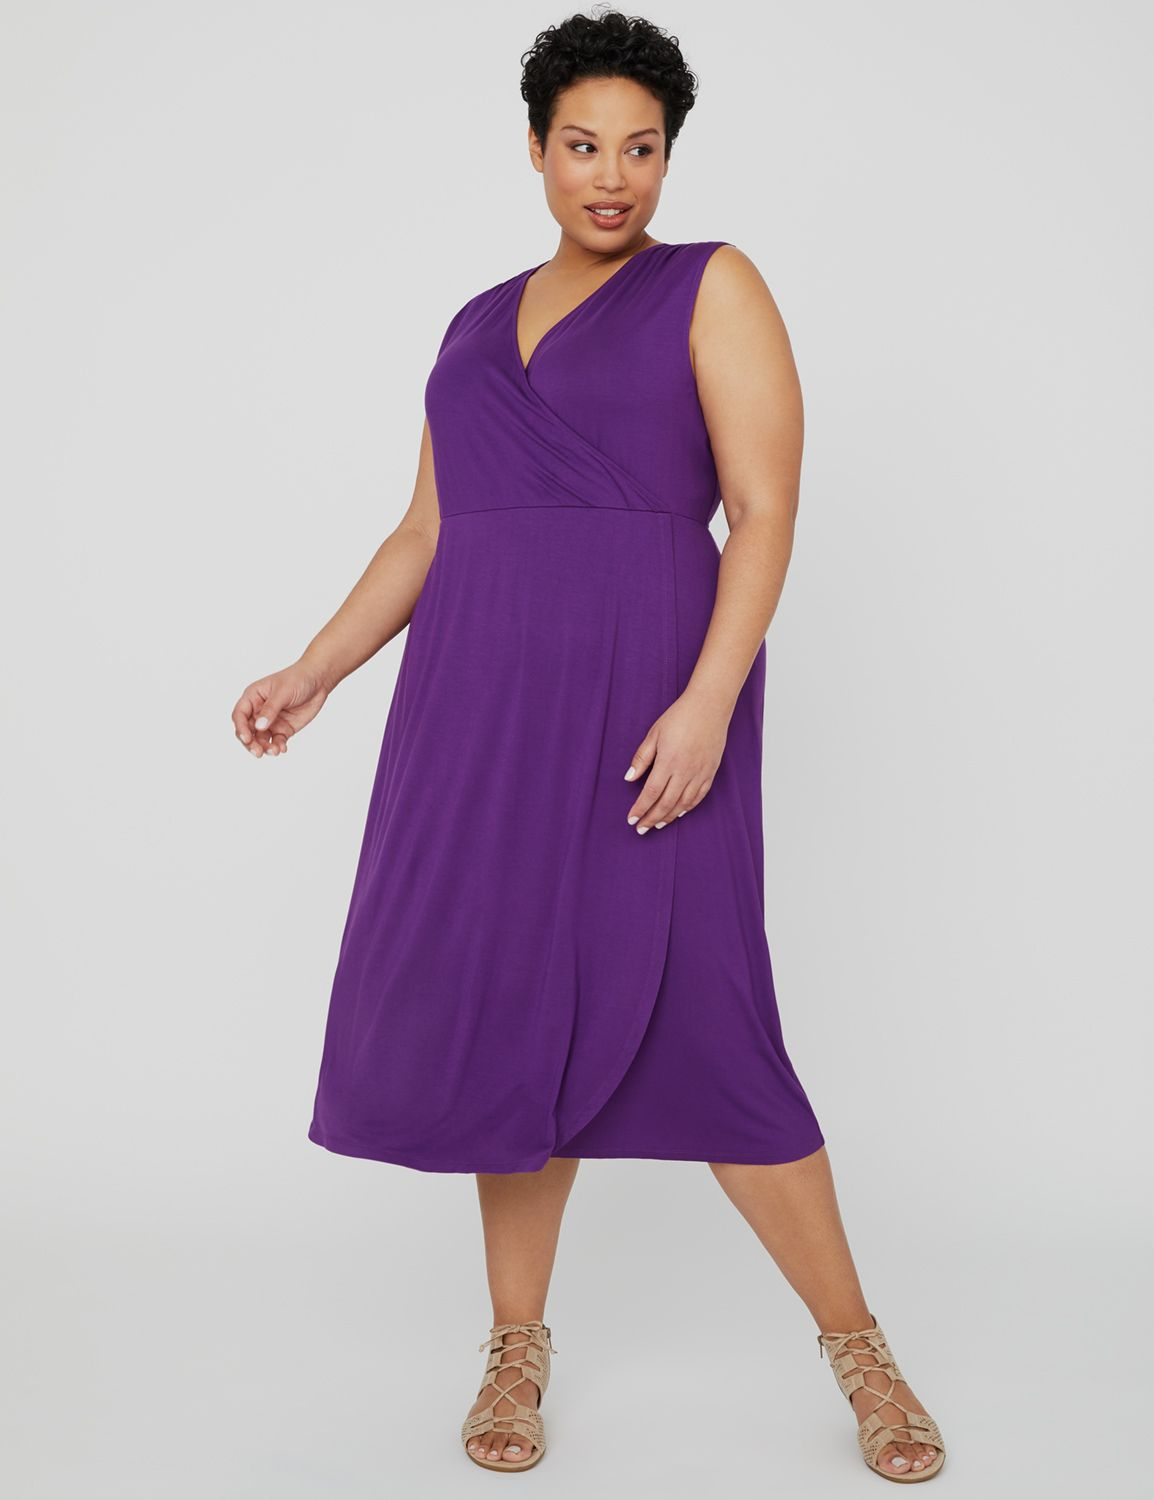 Riverview Wrap Dress 1088151 Vneck Front and Back Maxi E MP-300102357